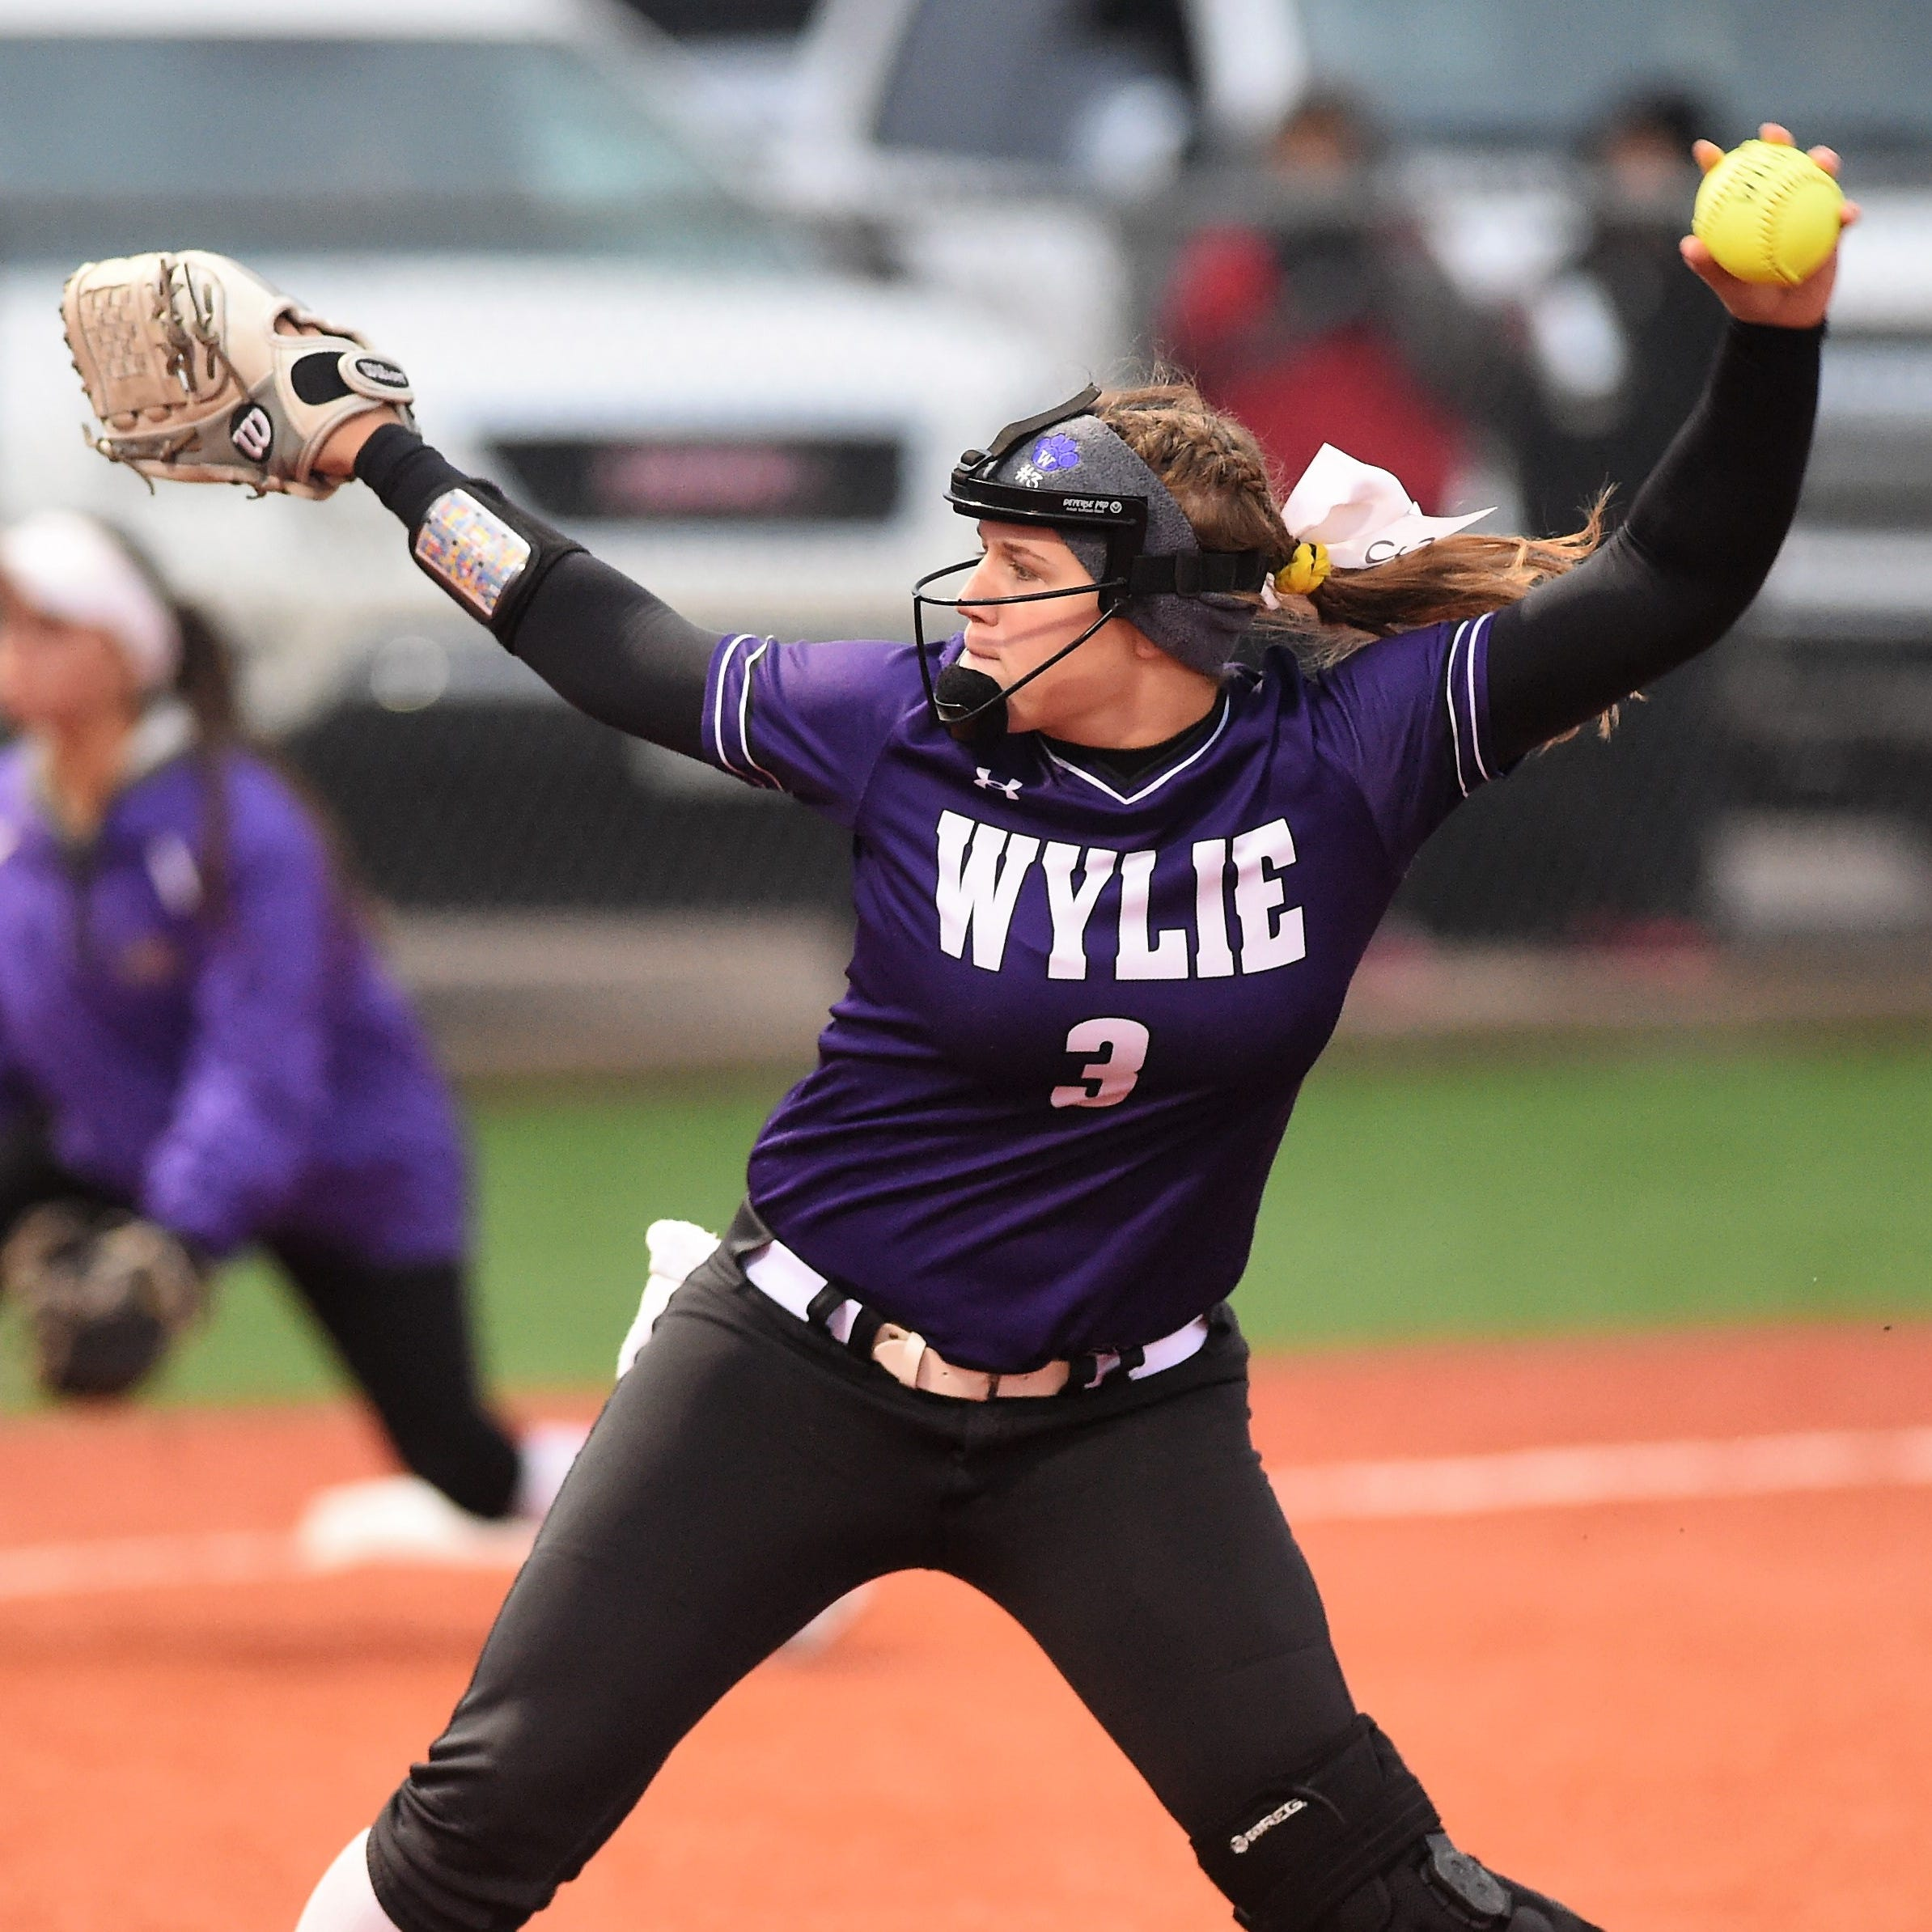 Abilene Wylie softball, baseball teams suffer similar fates in Game 1 losses